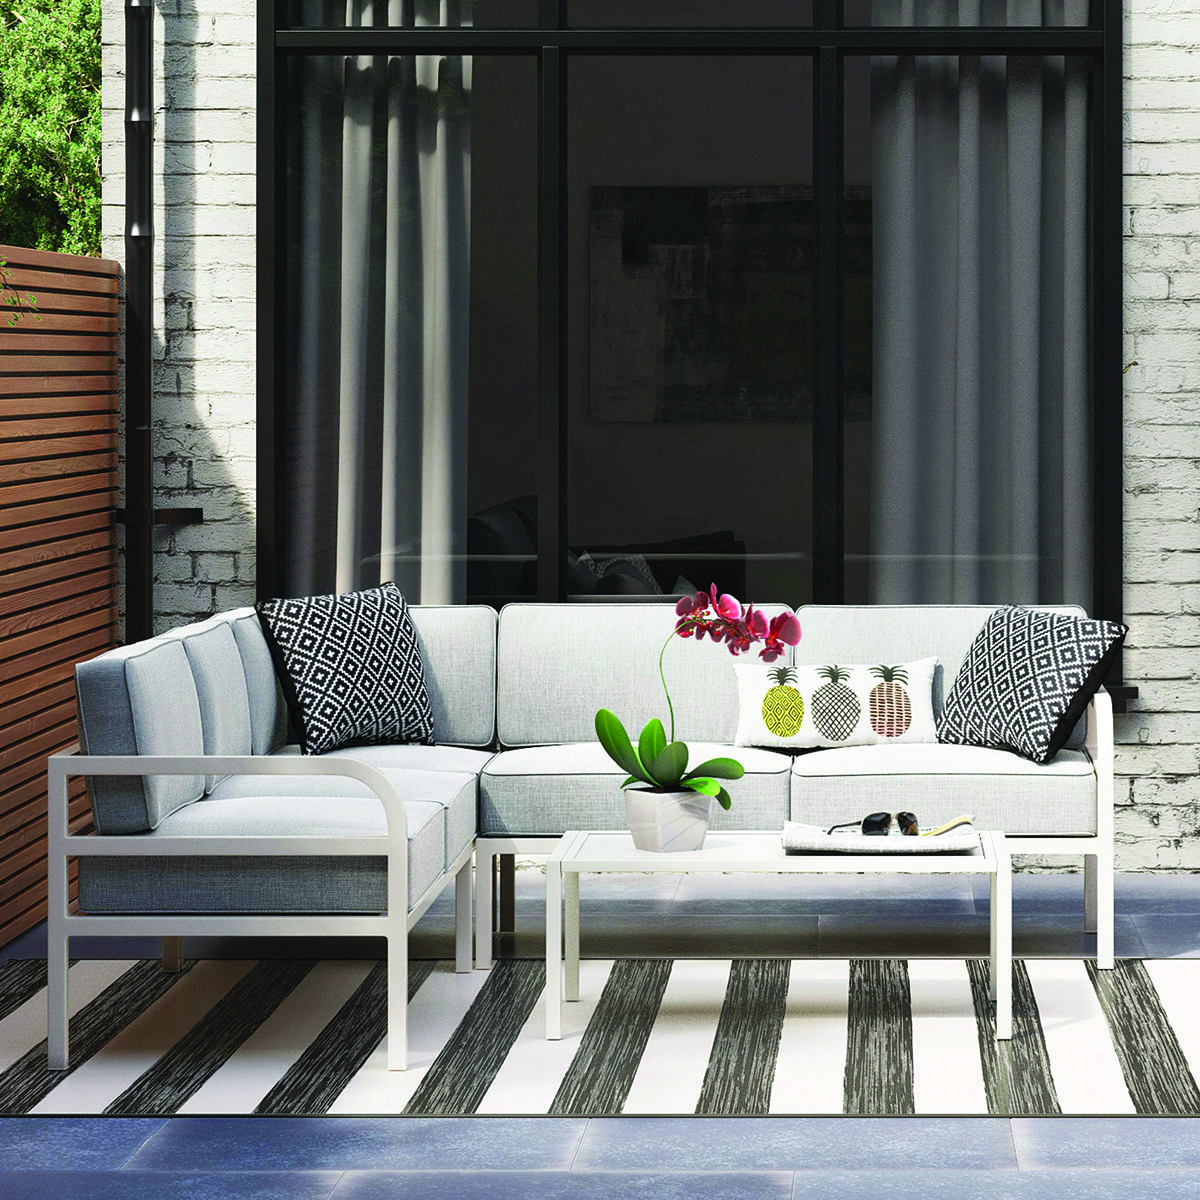 Beacon Hill Metal Patio Sectional Set, $520